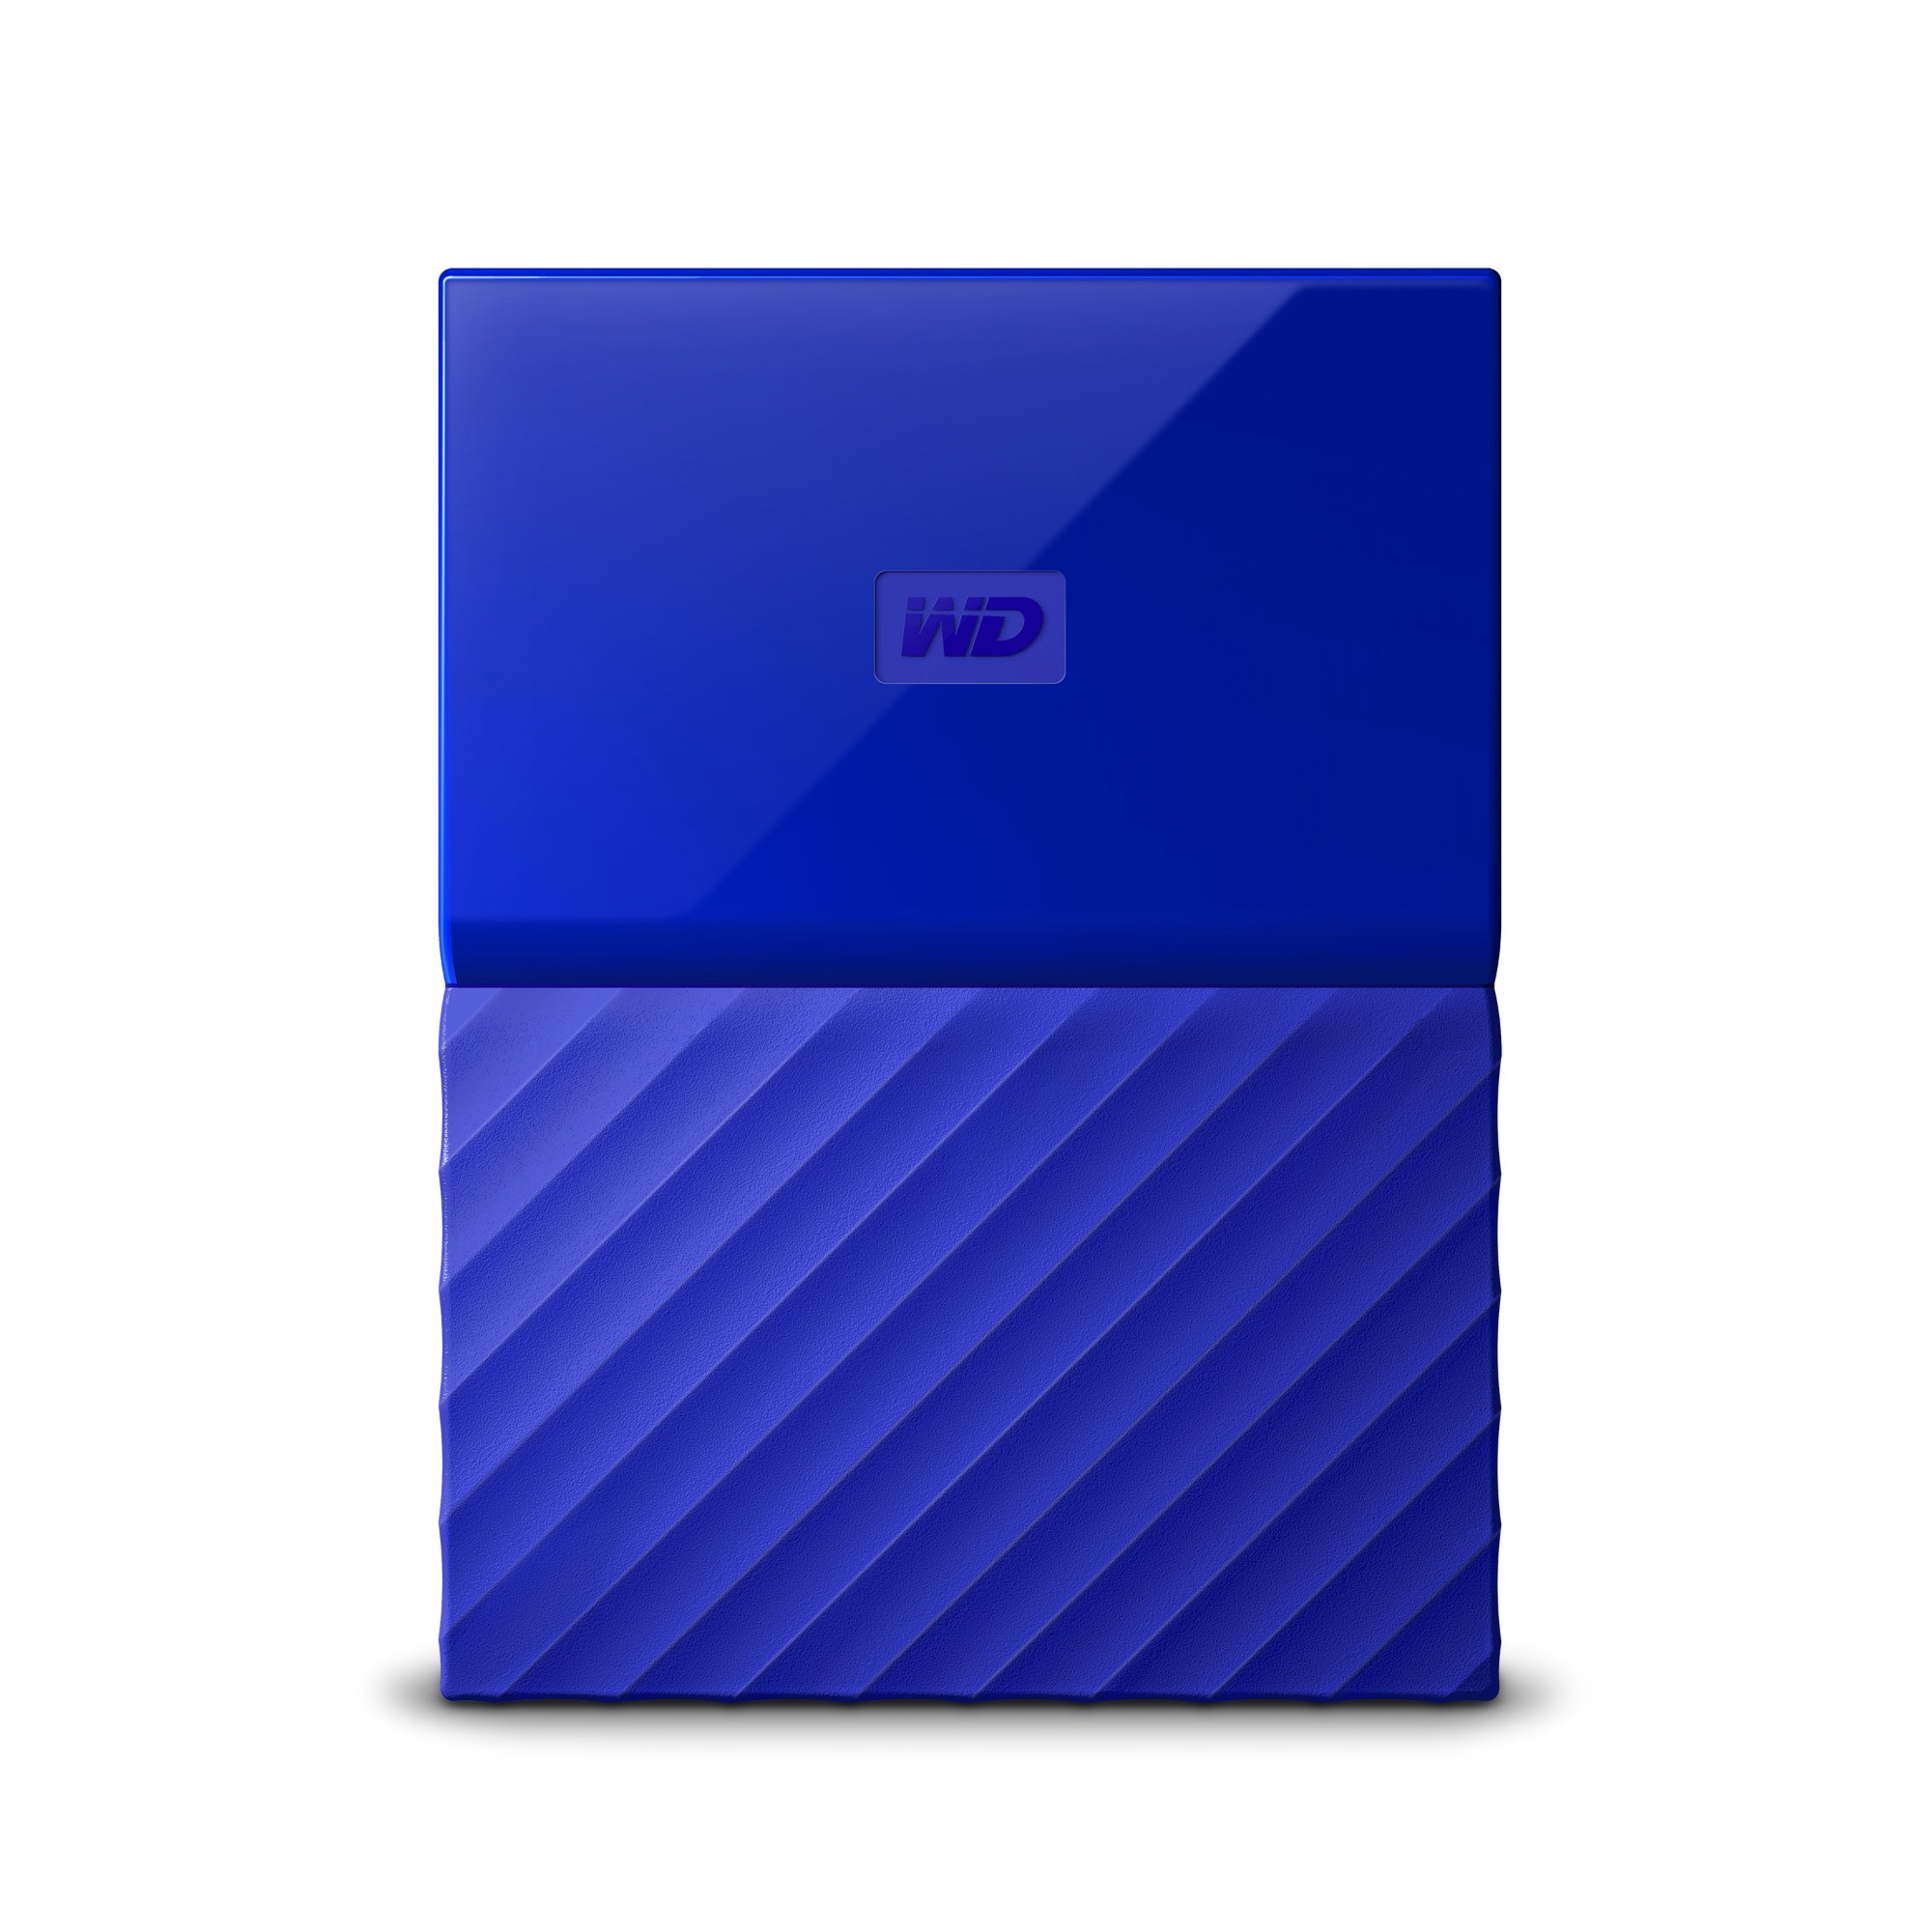 Western Digital My Passport 1000GB Blue external hard drive